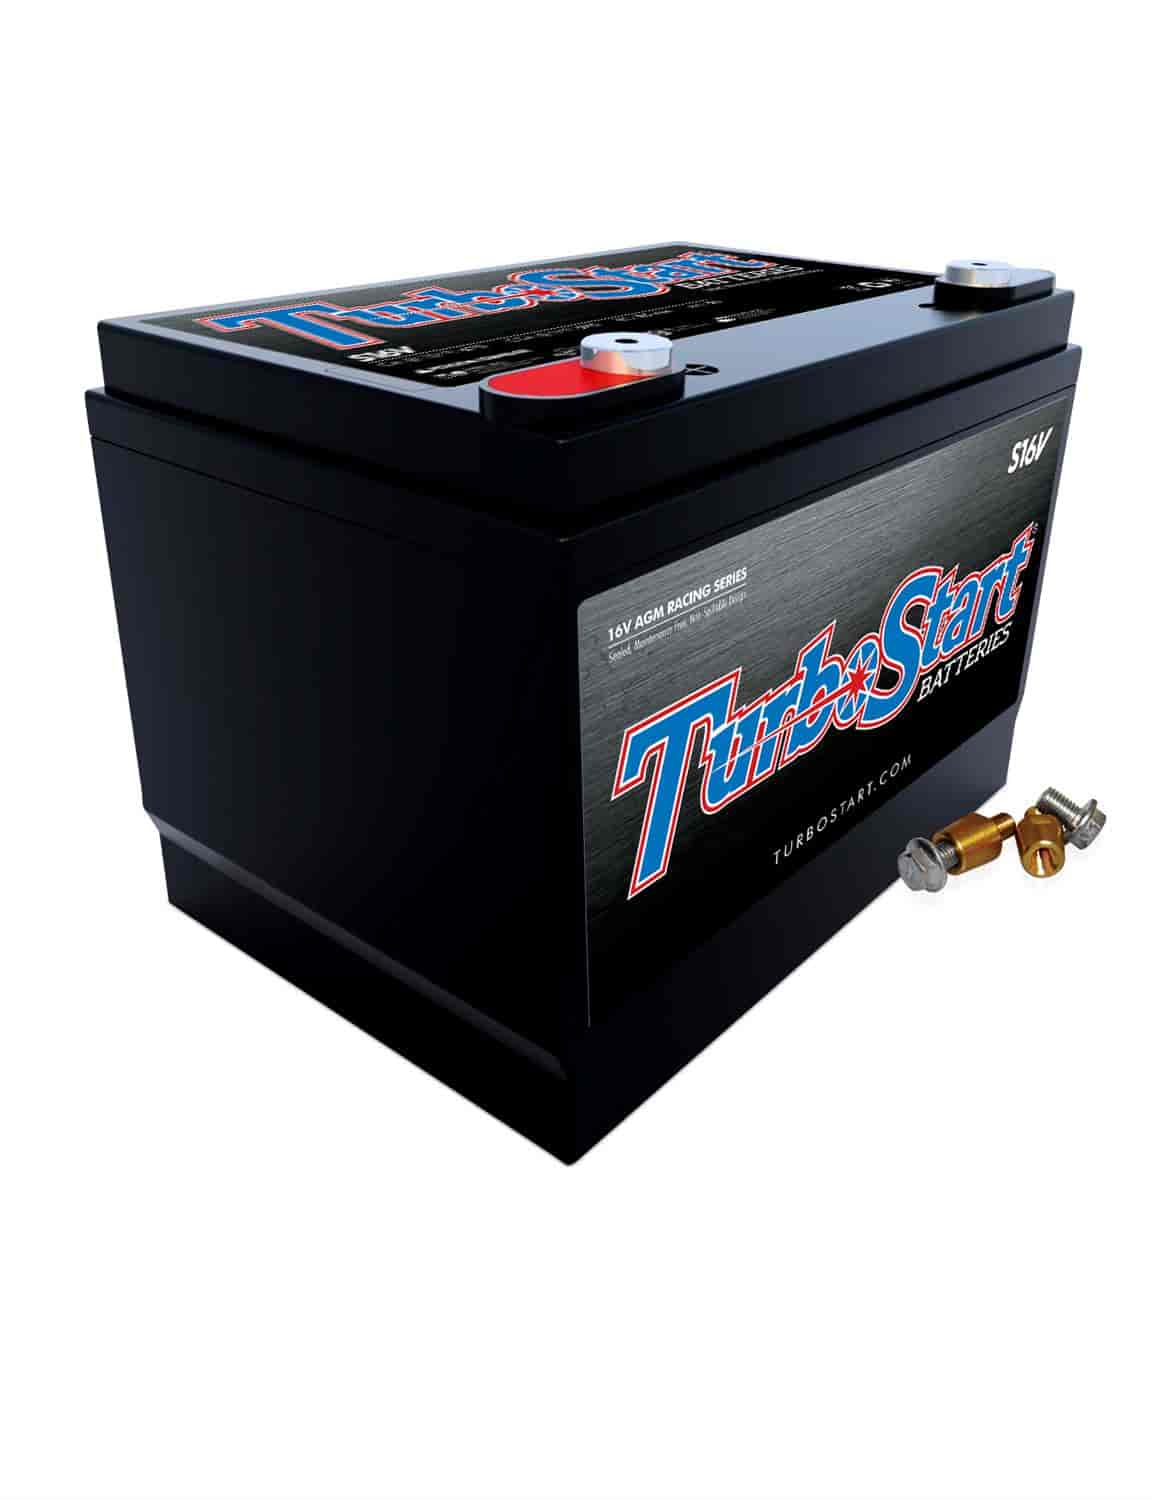 Turbo Start S16V - TurboStart 16 Volt Batteries